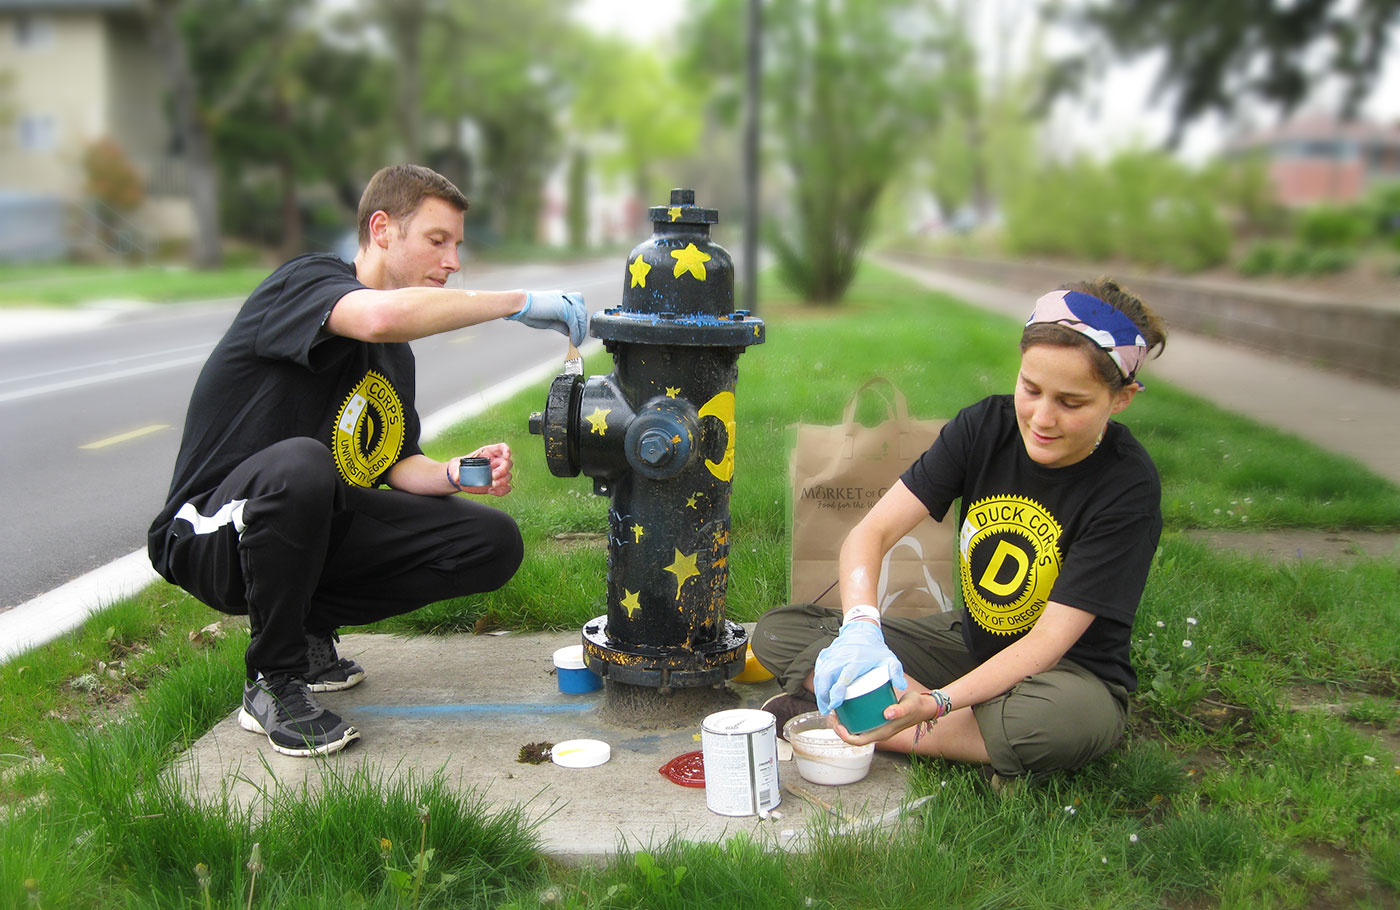 Two students painting a fire hydrant wearing Duck Corps t-shirts.